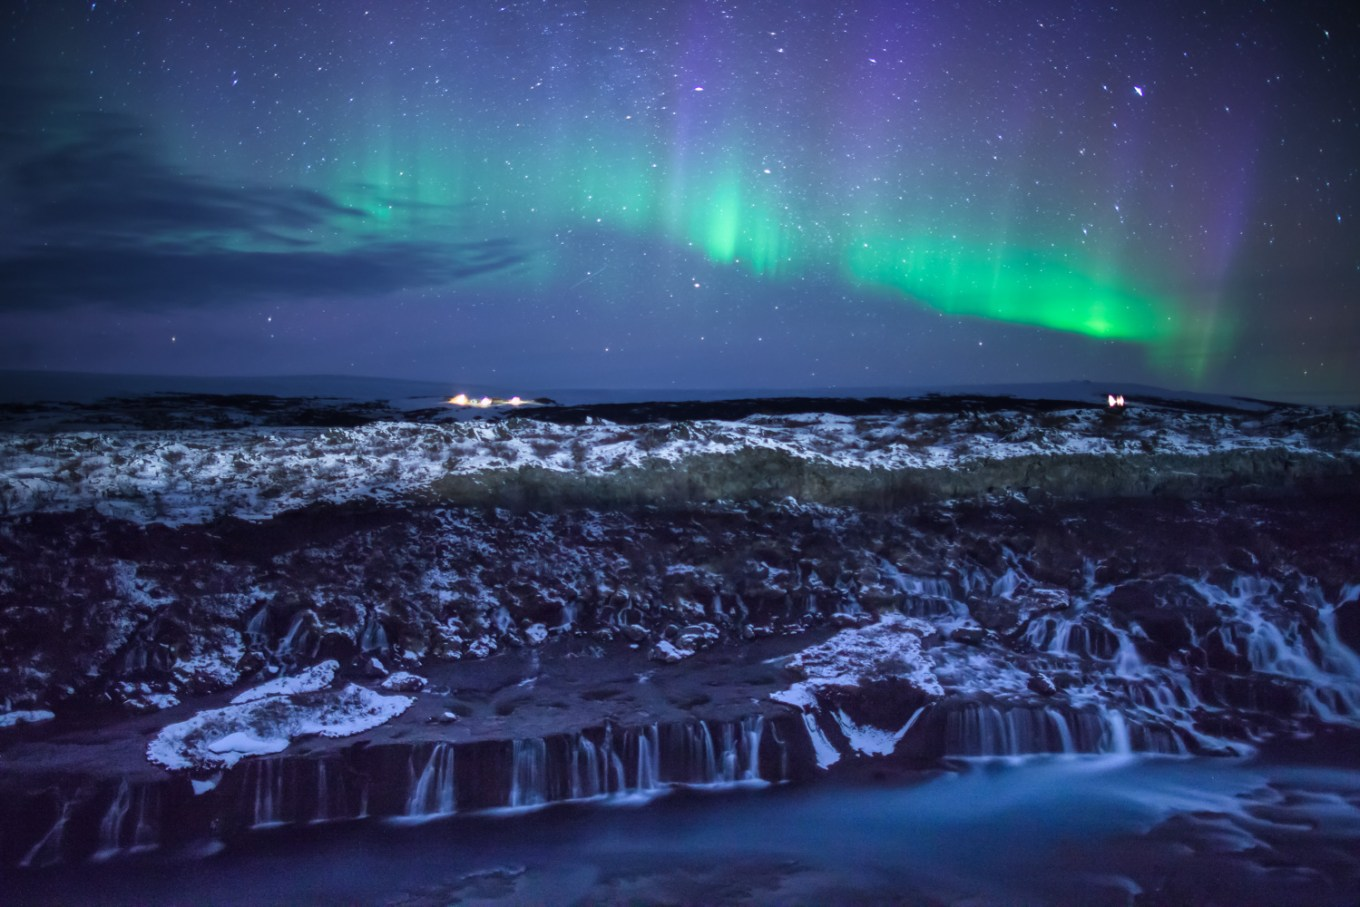 Nighttime photography - northern lights over mountains and waterfalls